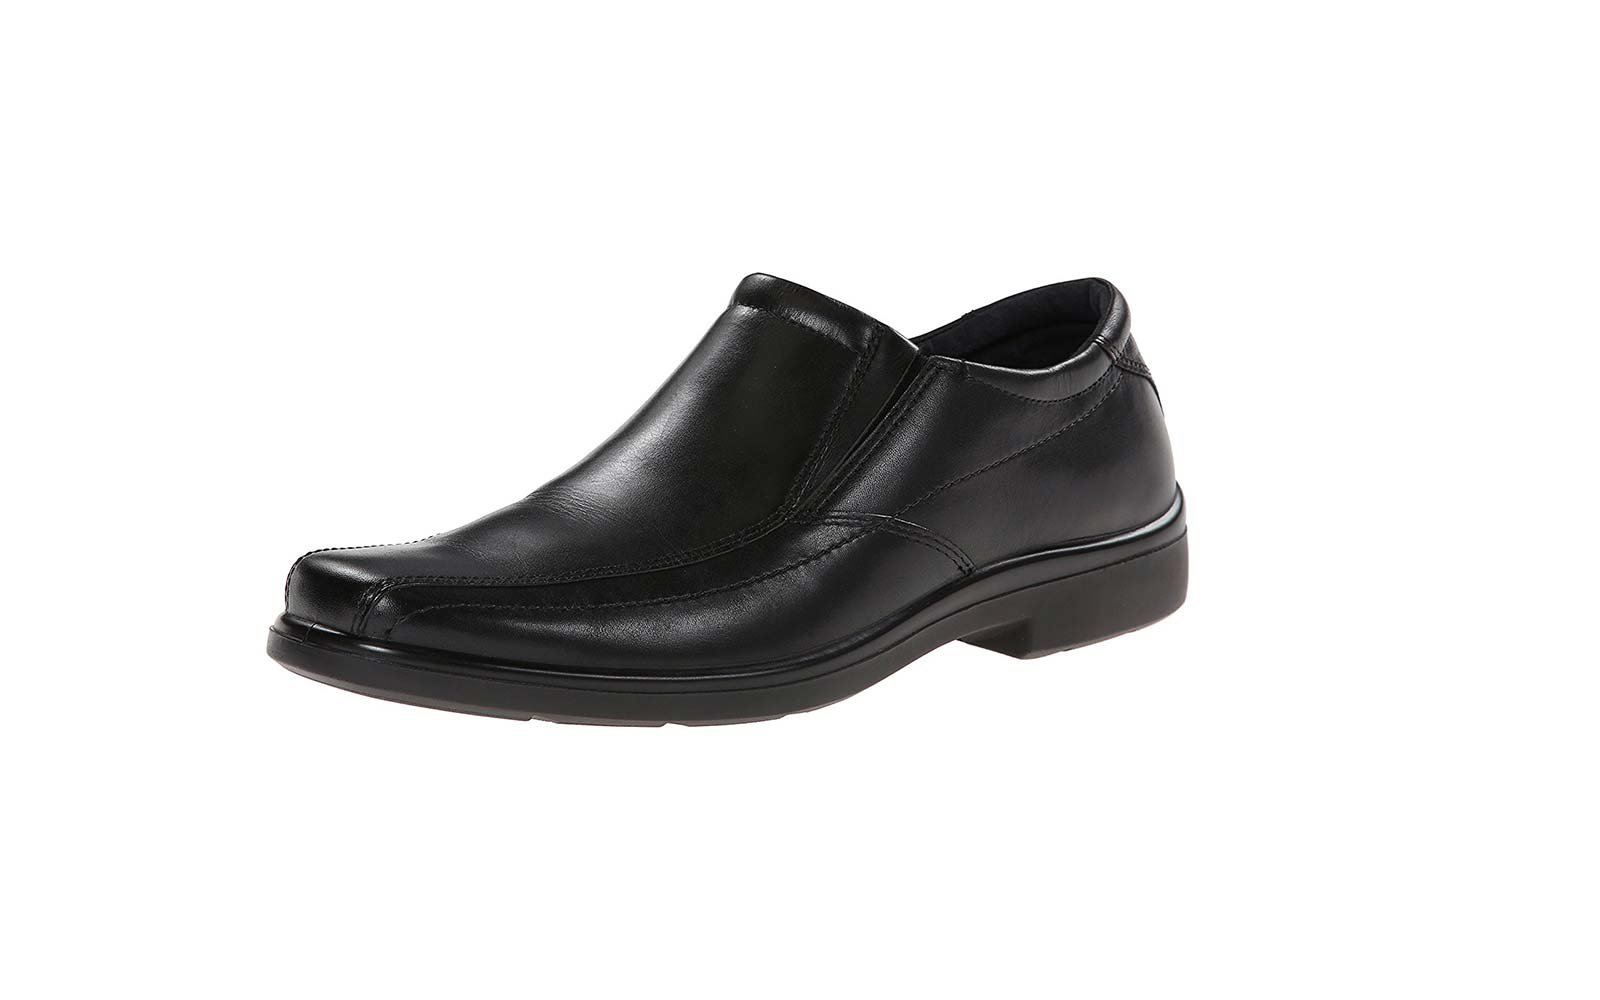 Hush Puppies Slip-On Loafer